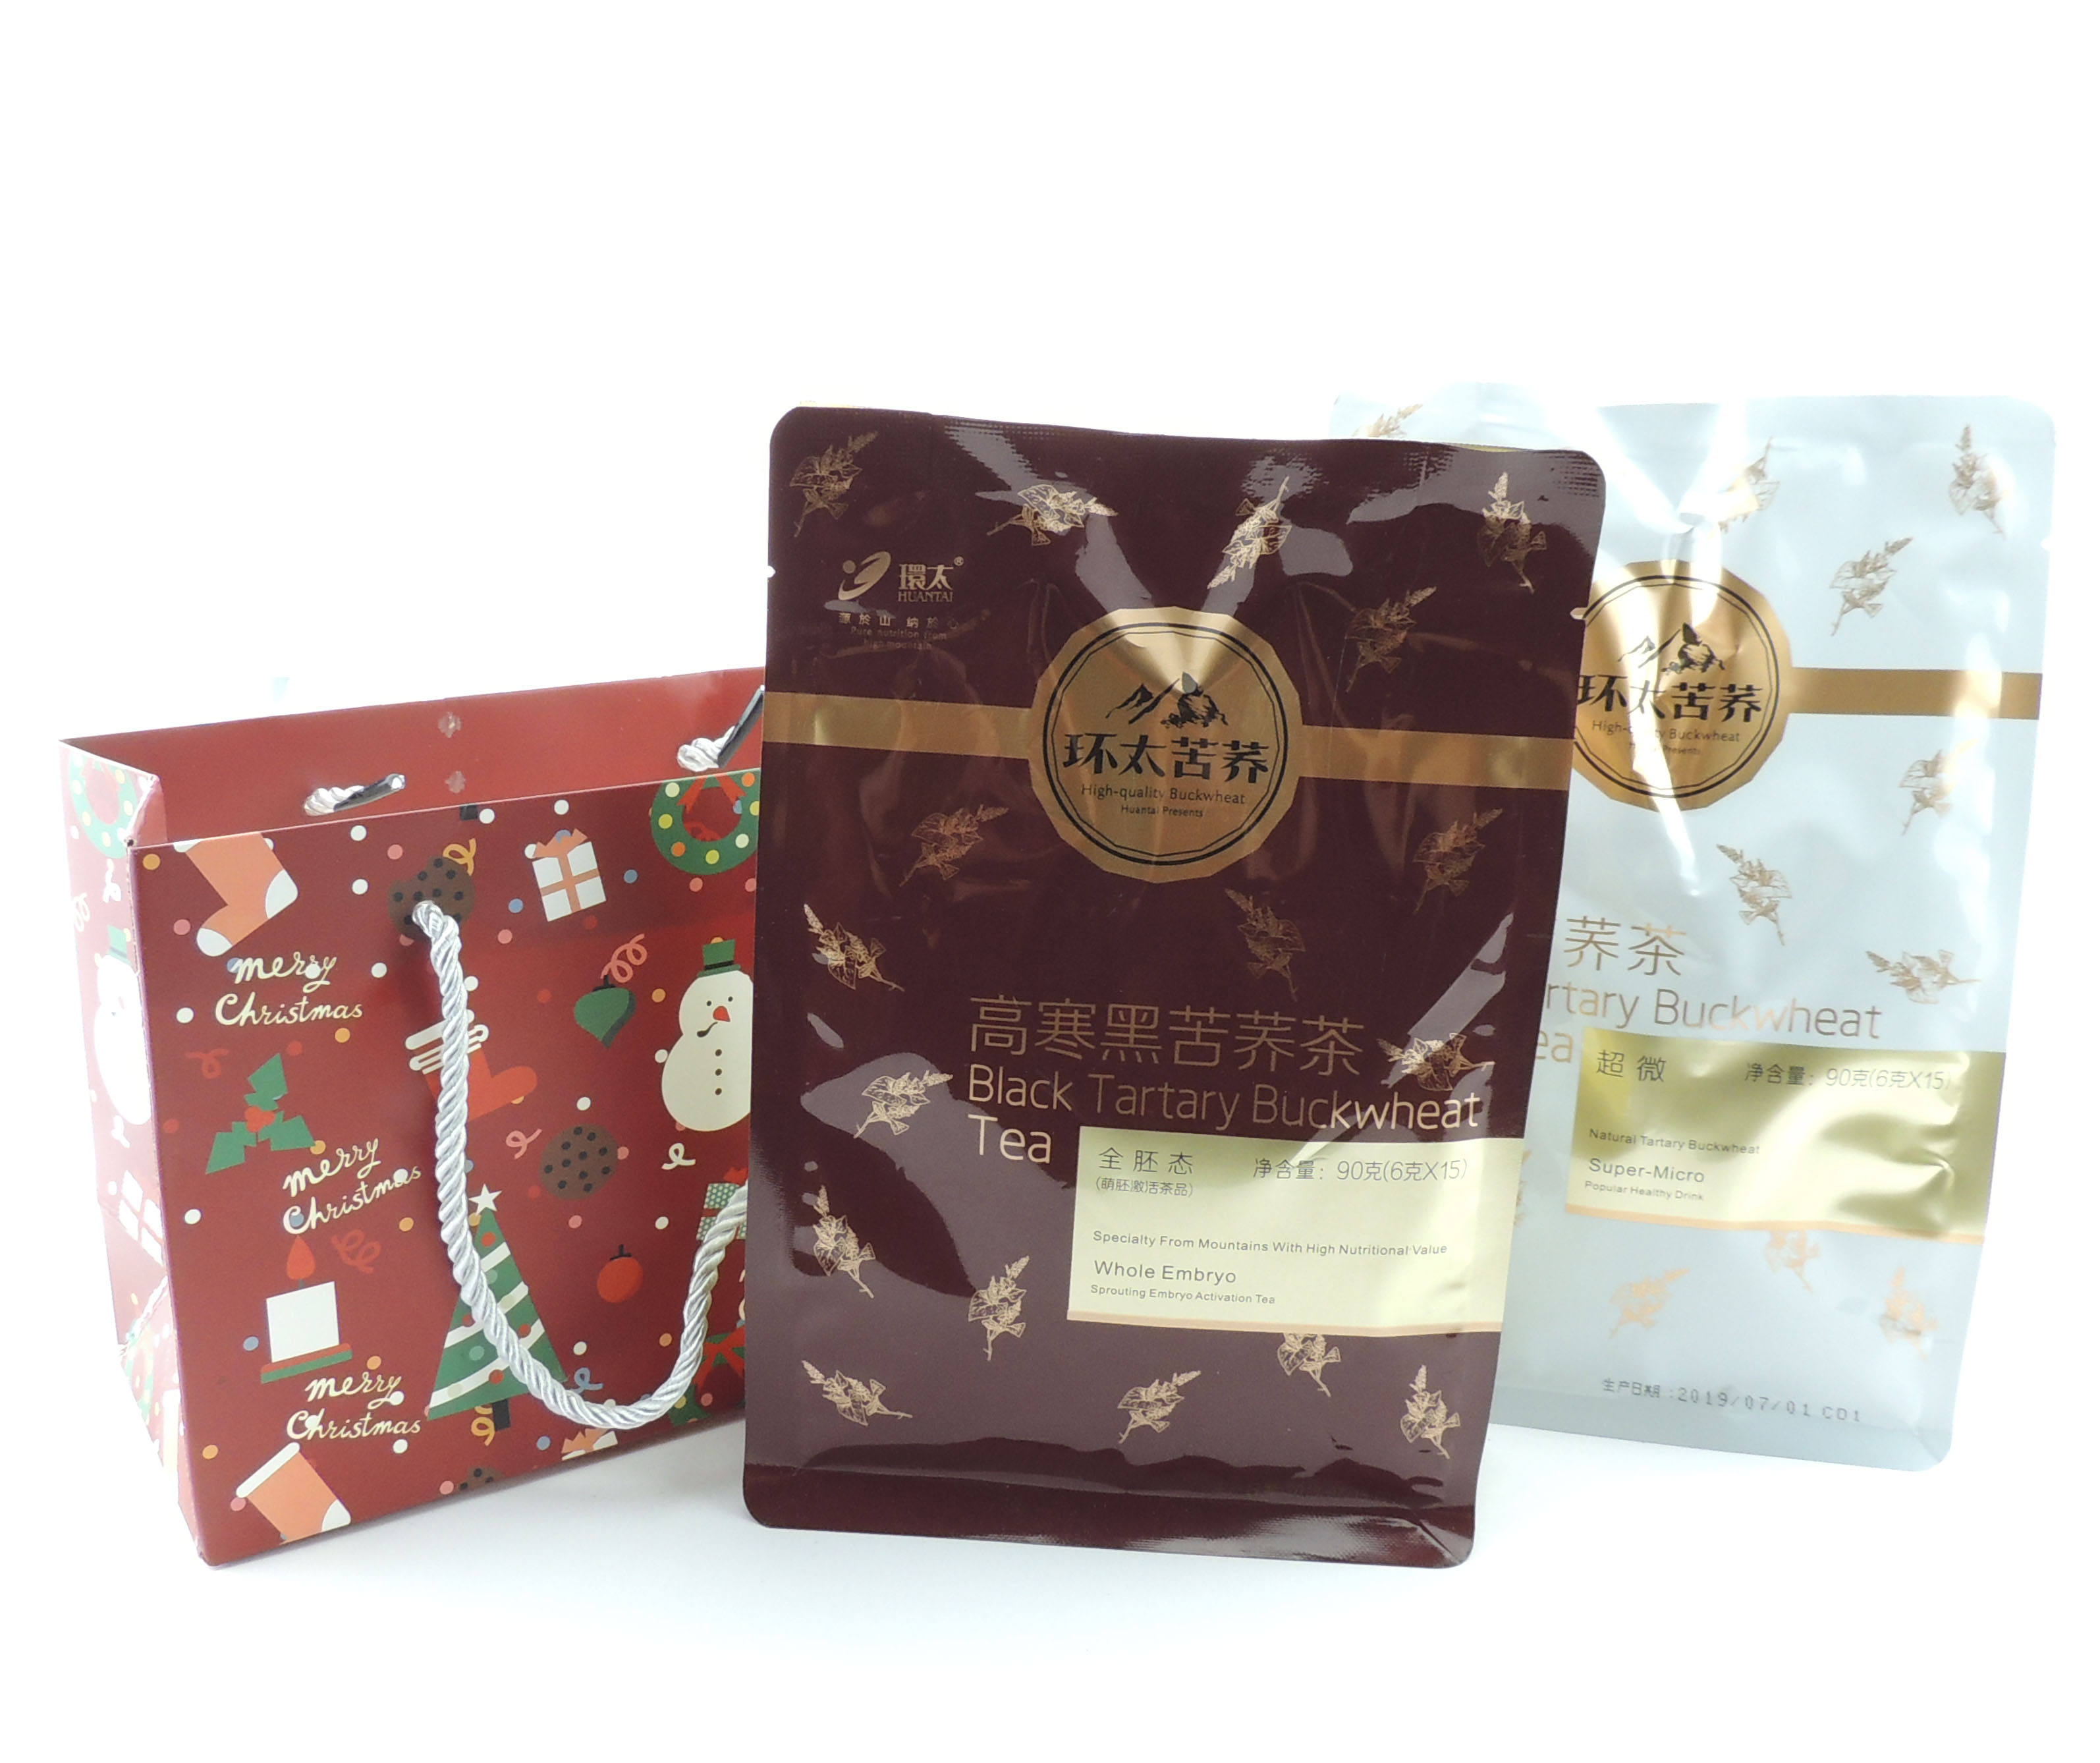 highly prized for being a nutrient-rich organic super food Chinese soba buckwheat tea for Christmas gift diabetic drink